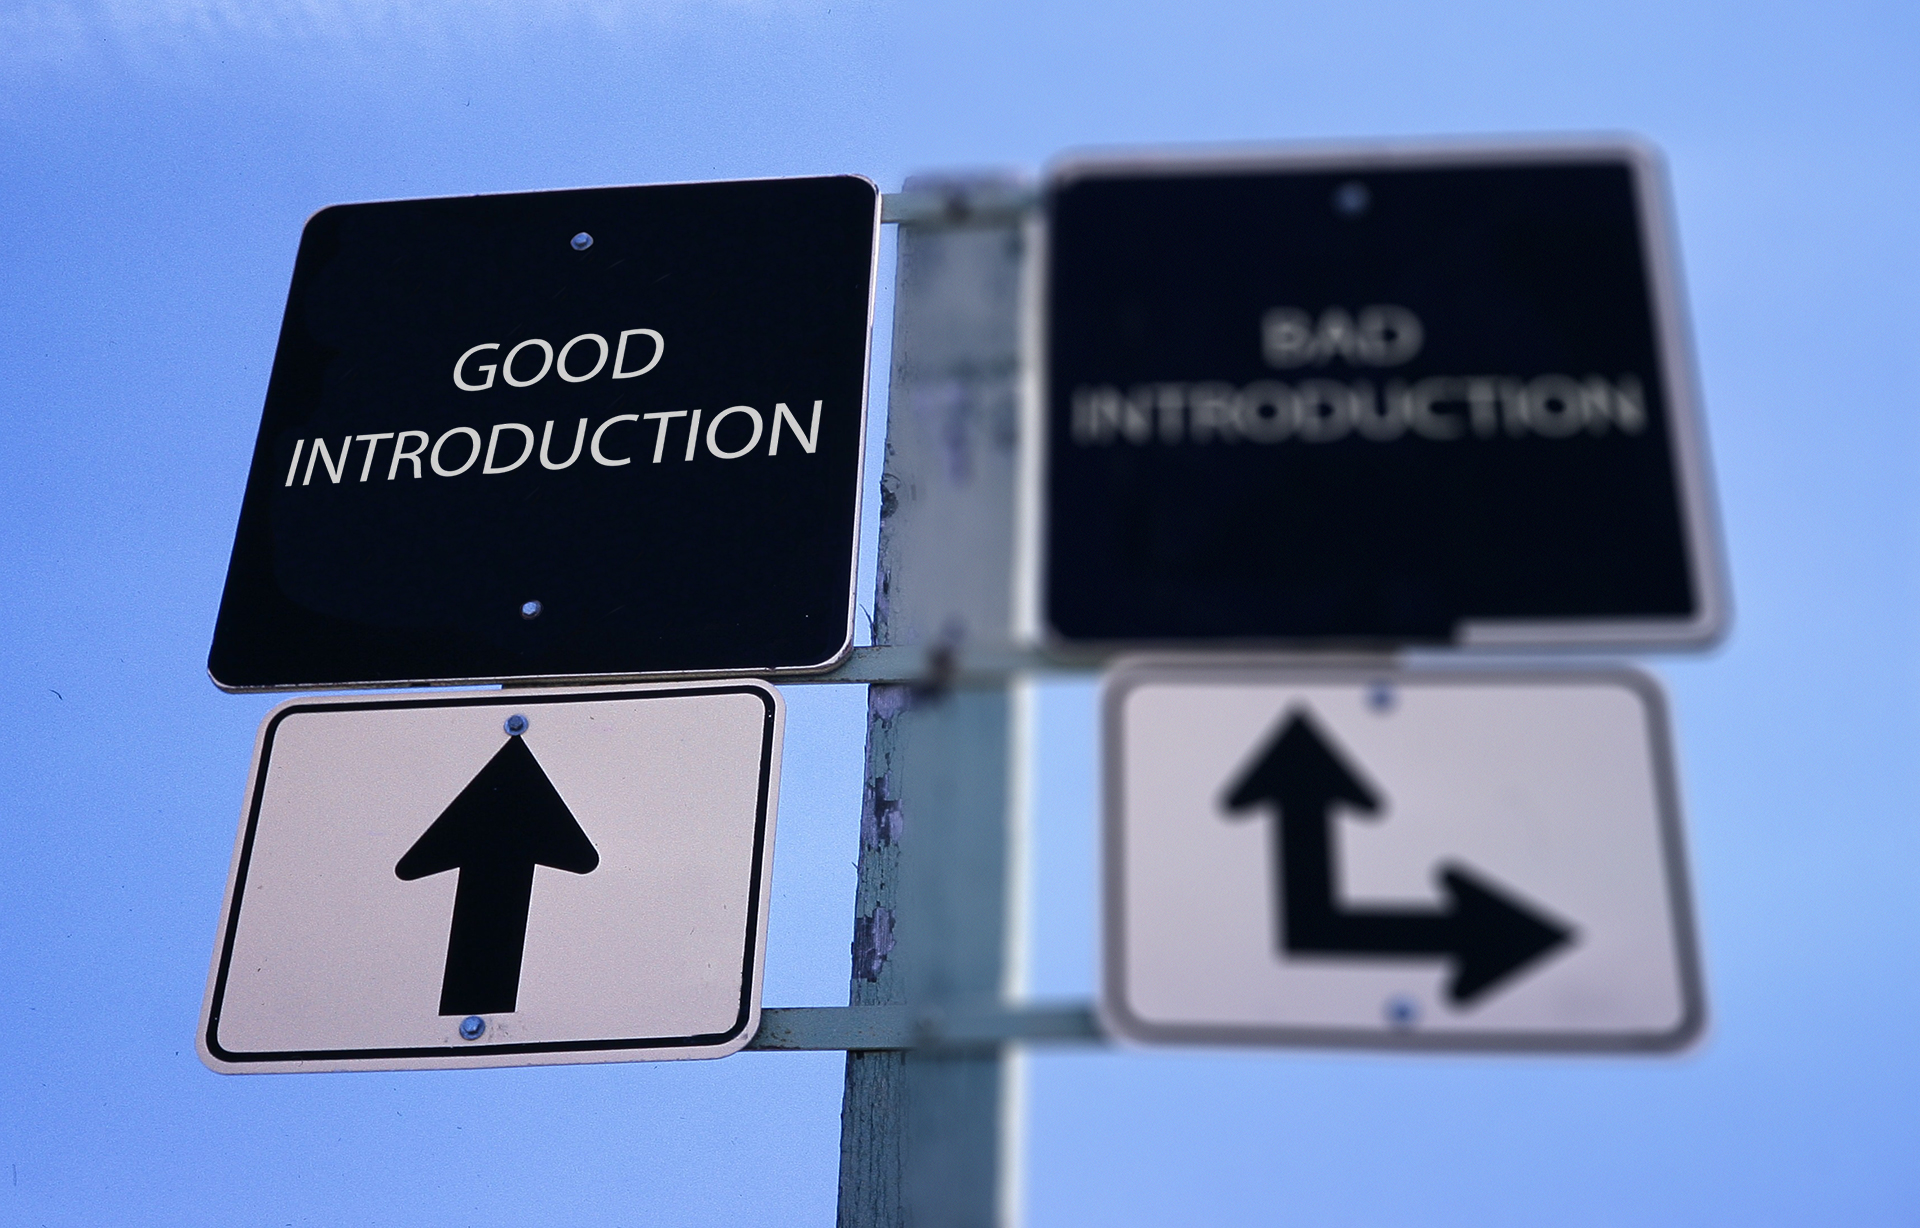 Visible good introduction sign and blurry bad introduction sign